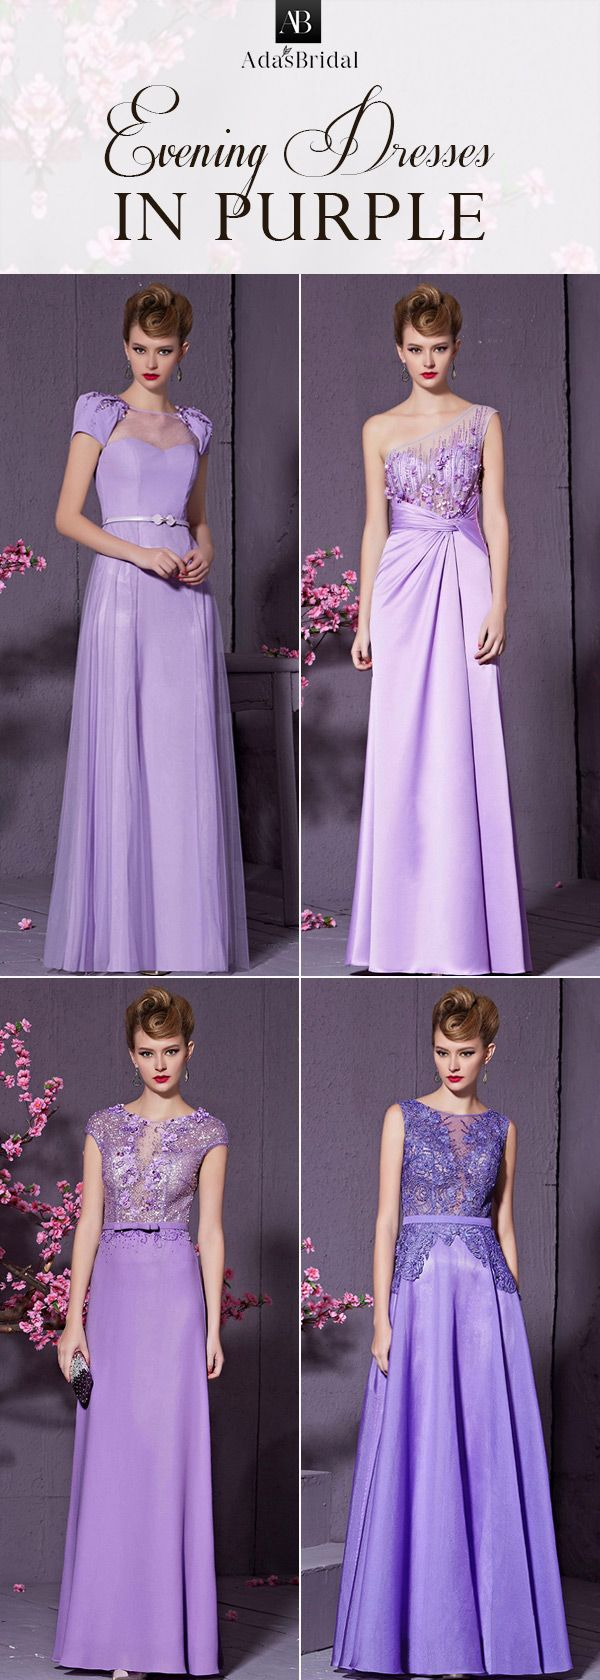 60 best formal gowns images on Pinterest | Marriage, Boyfriends and ...